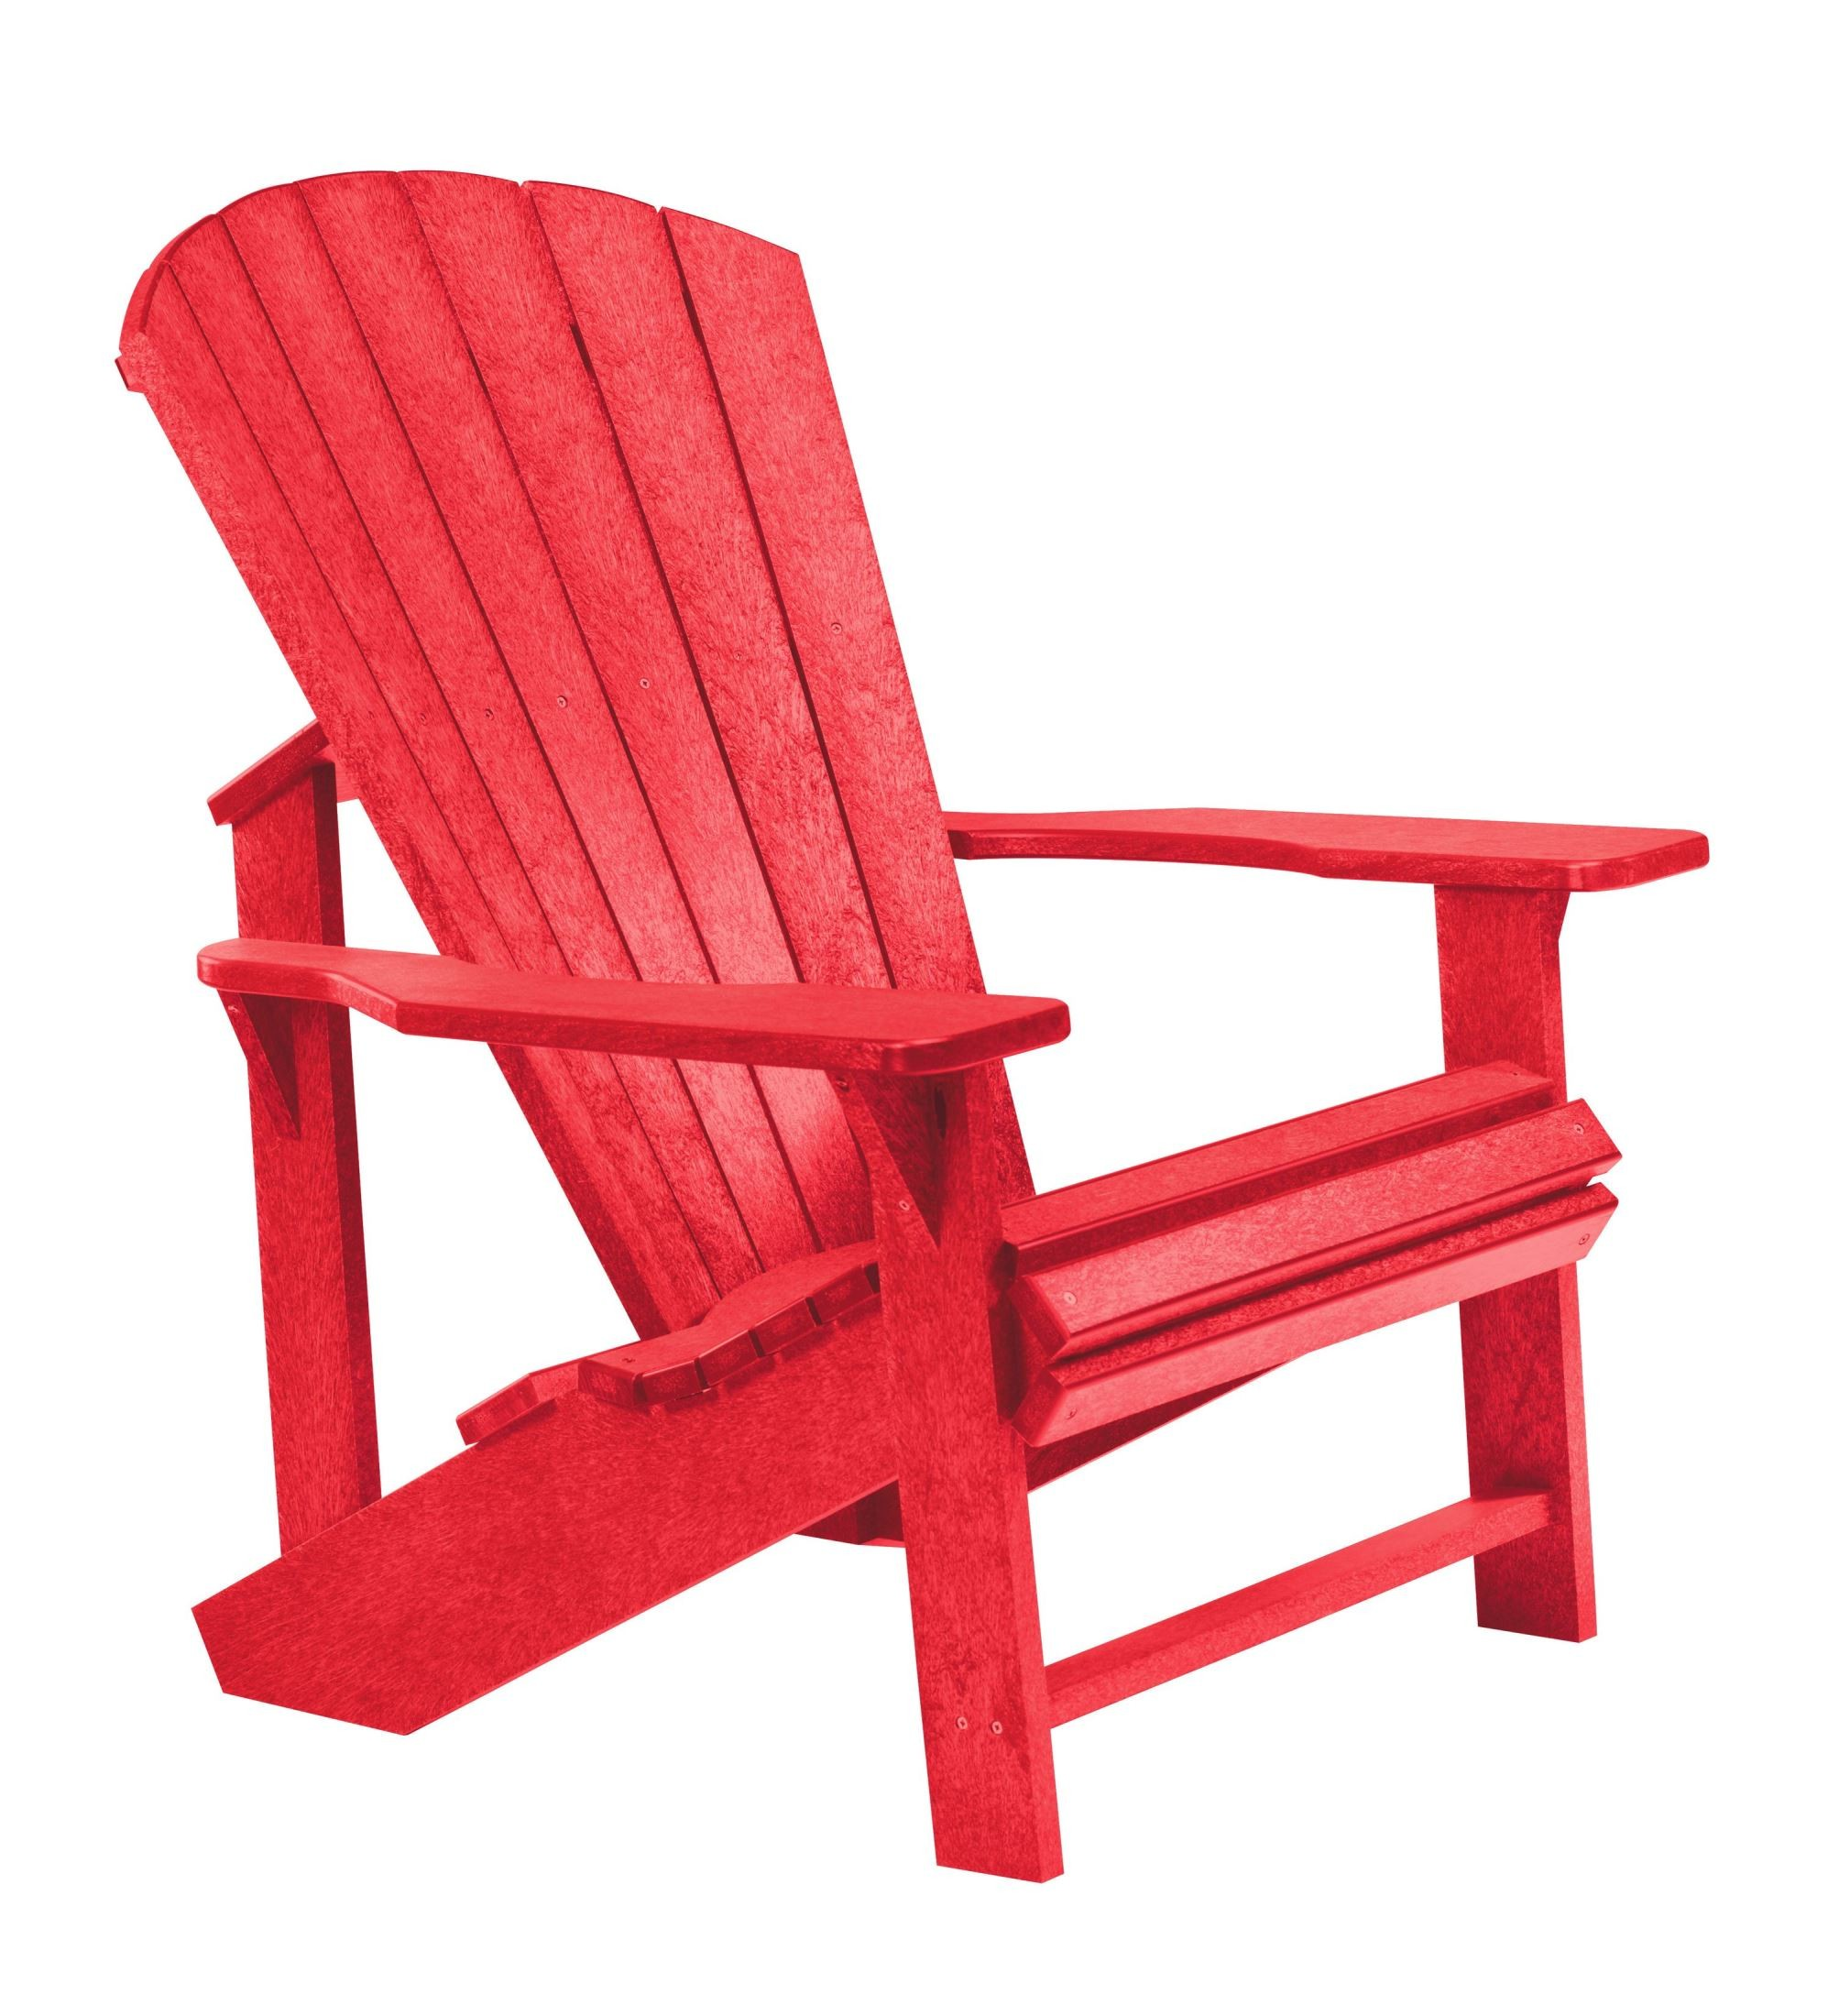 Generations Red Adirondack Chair from CR Plastic (C01-01 ...